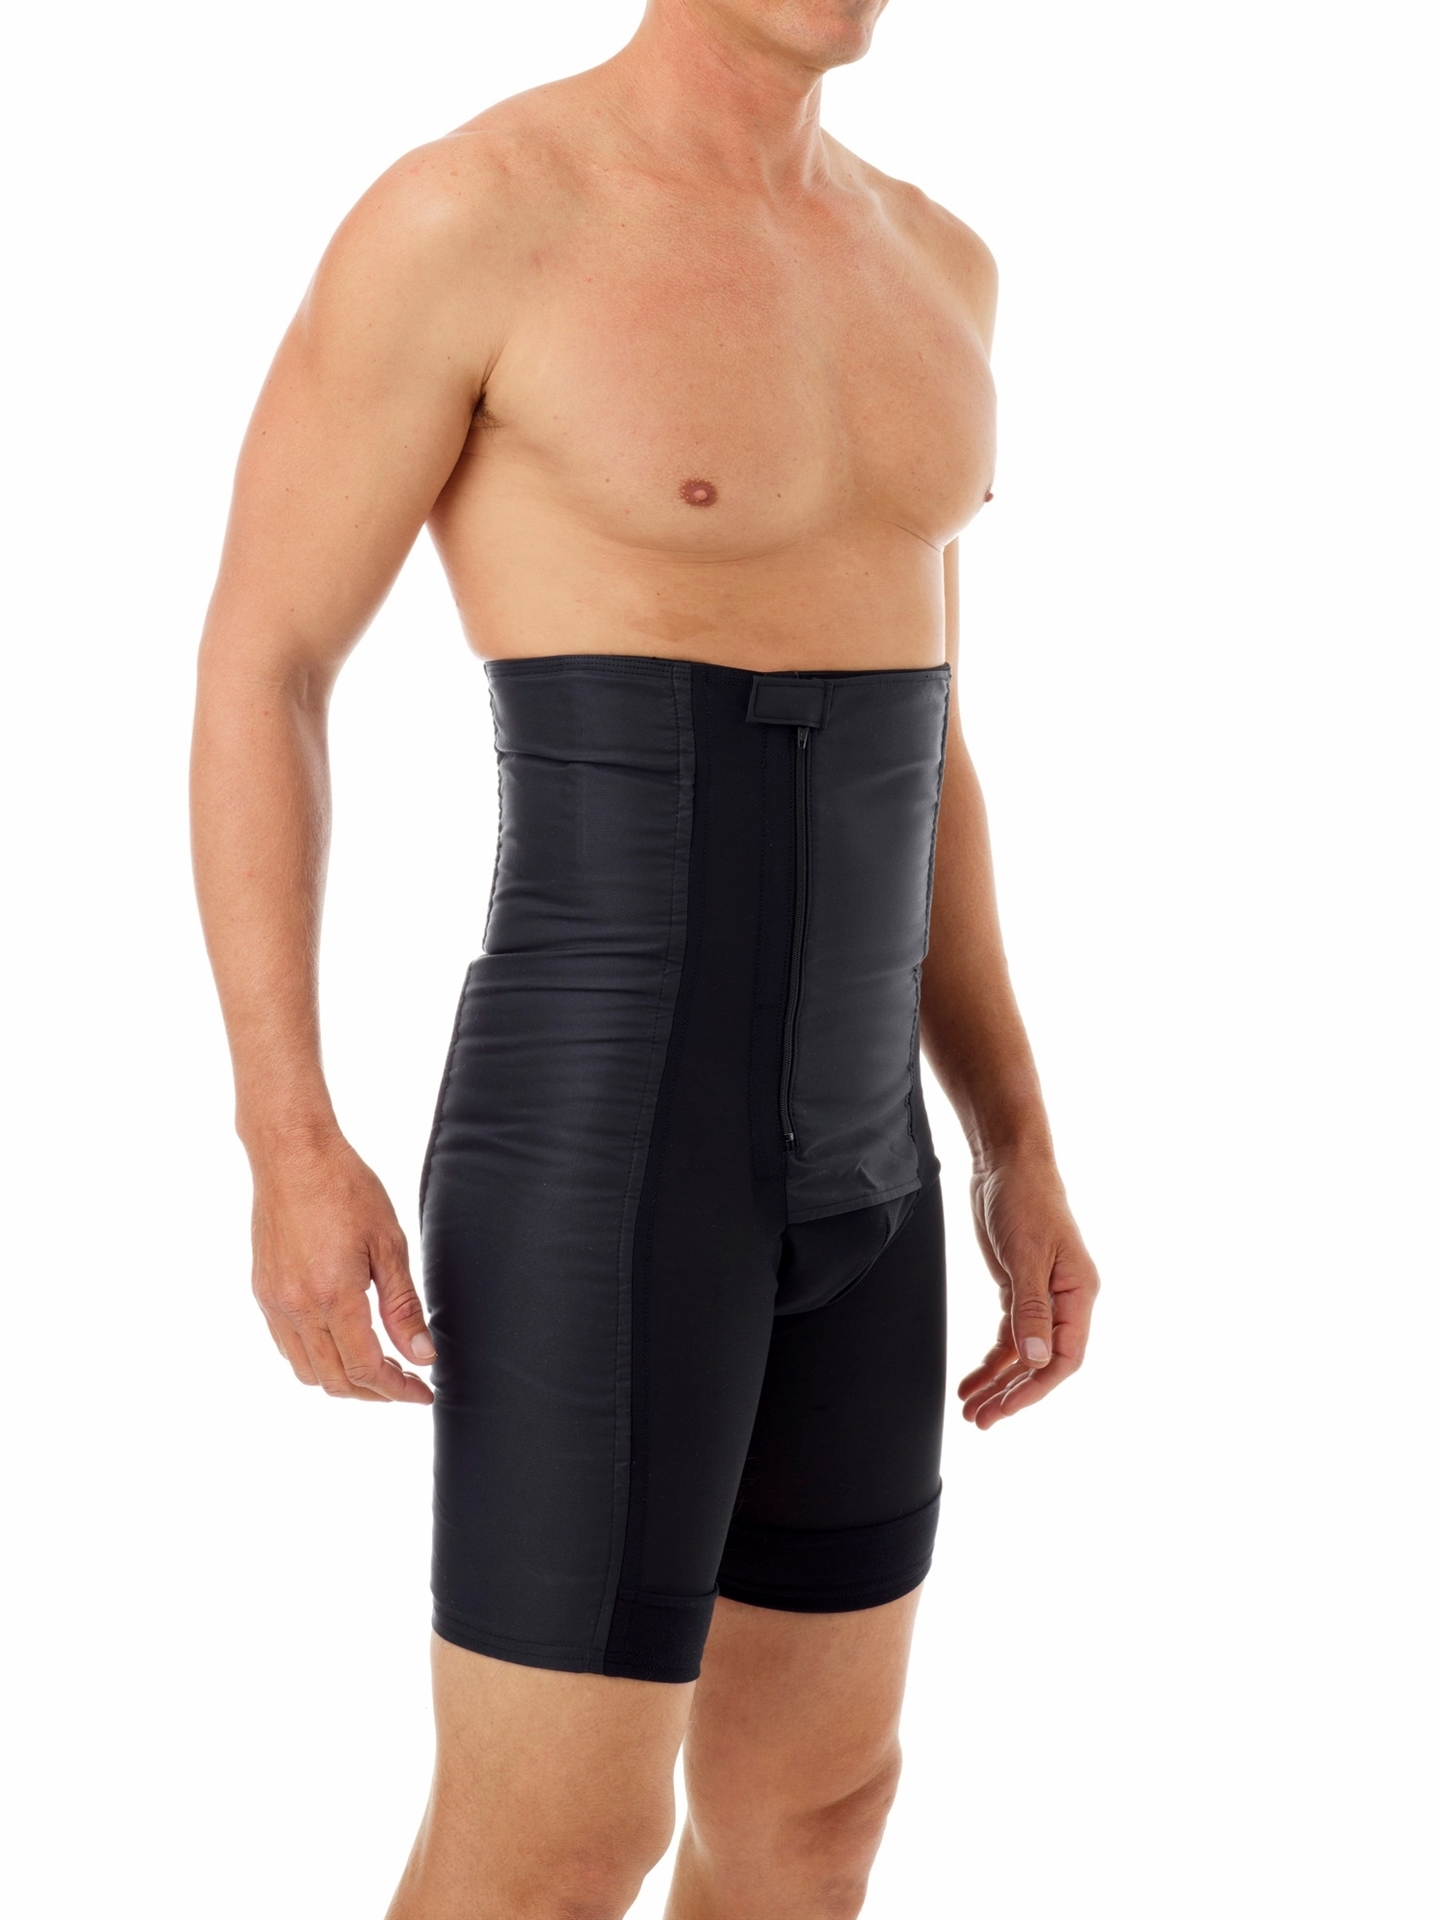 Mens shapewear helps tone and flatten your stomach and thigh areas